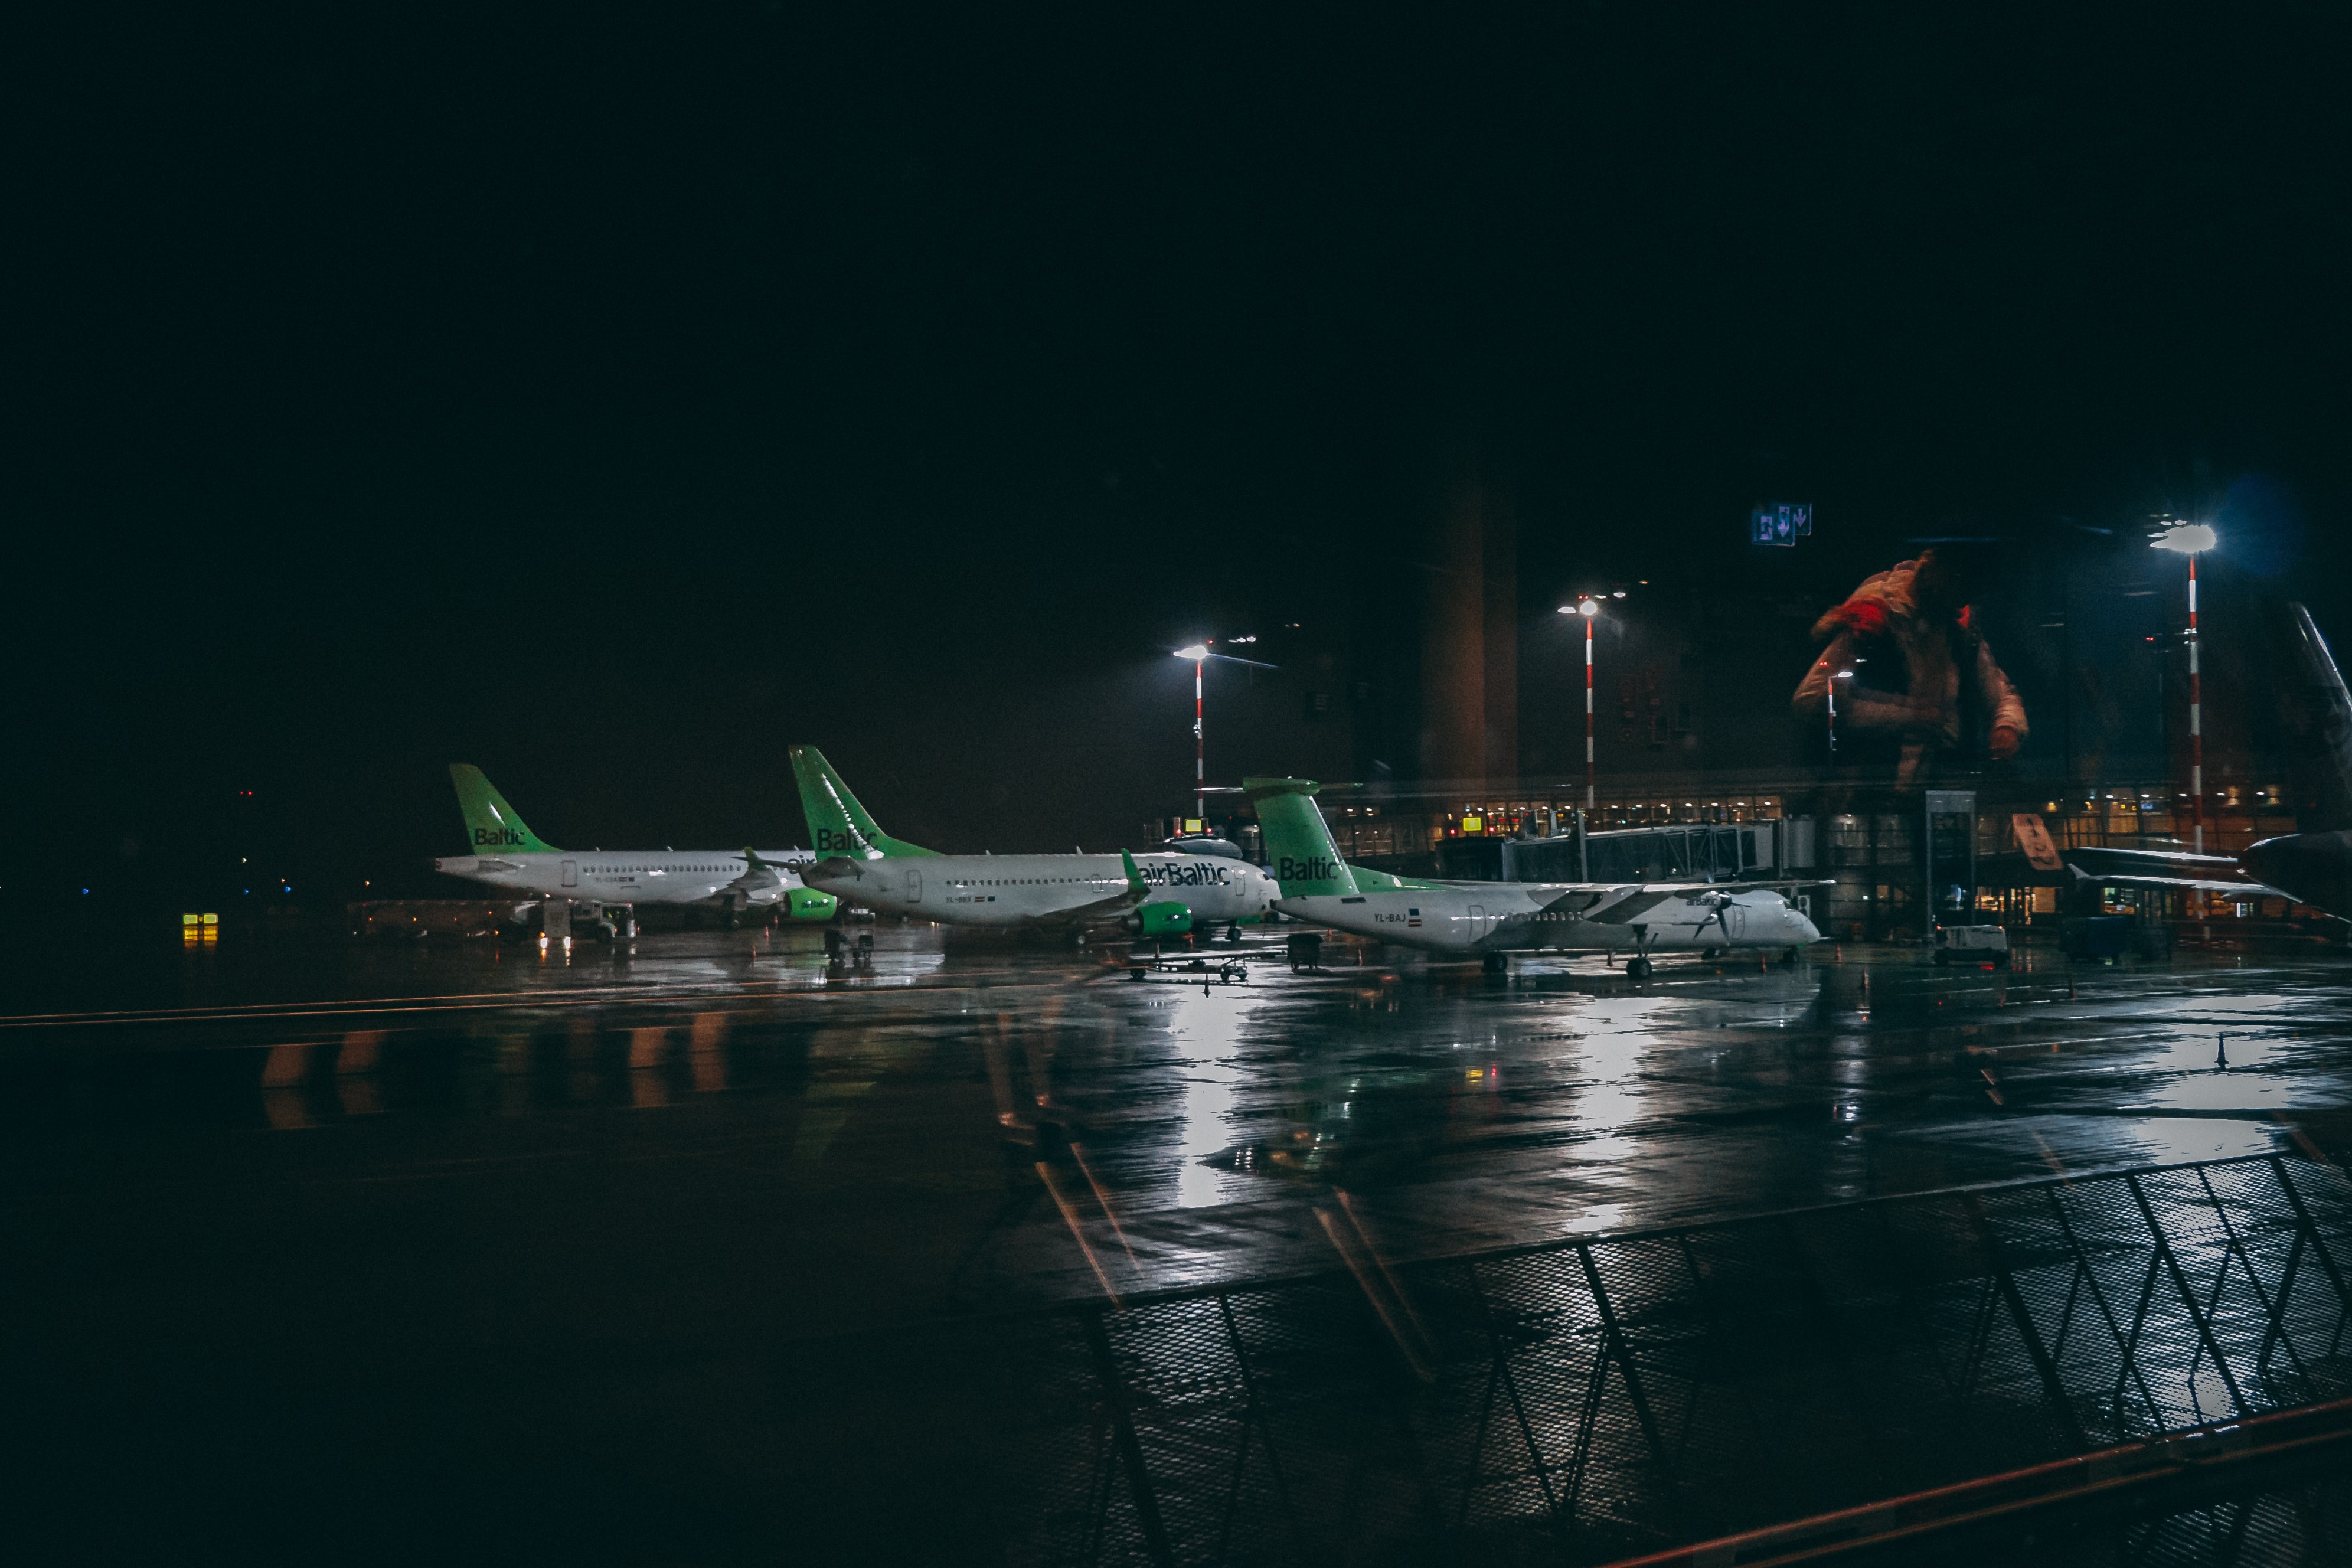 three white and green plane on the airport photography during nighttime